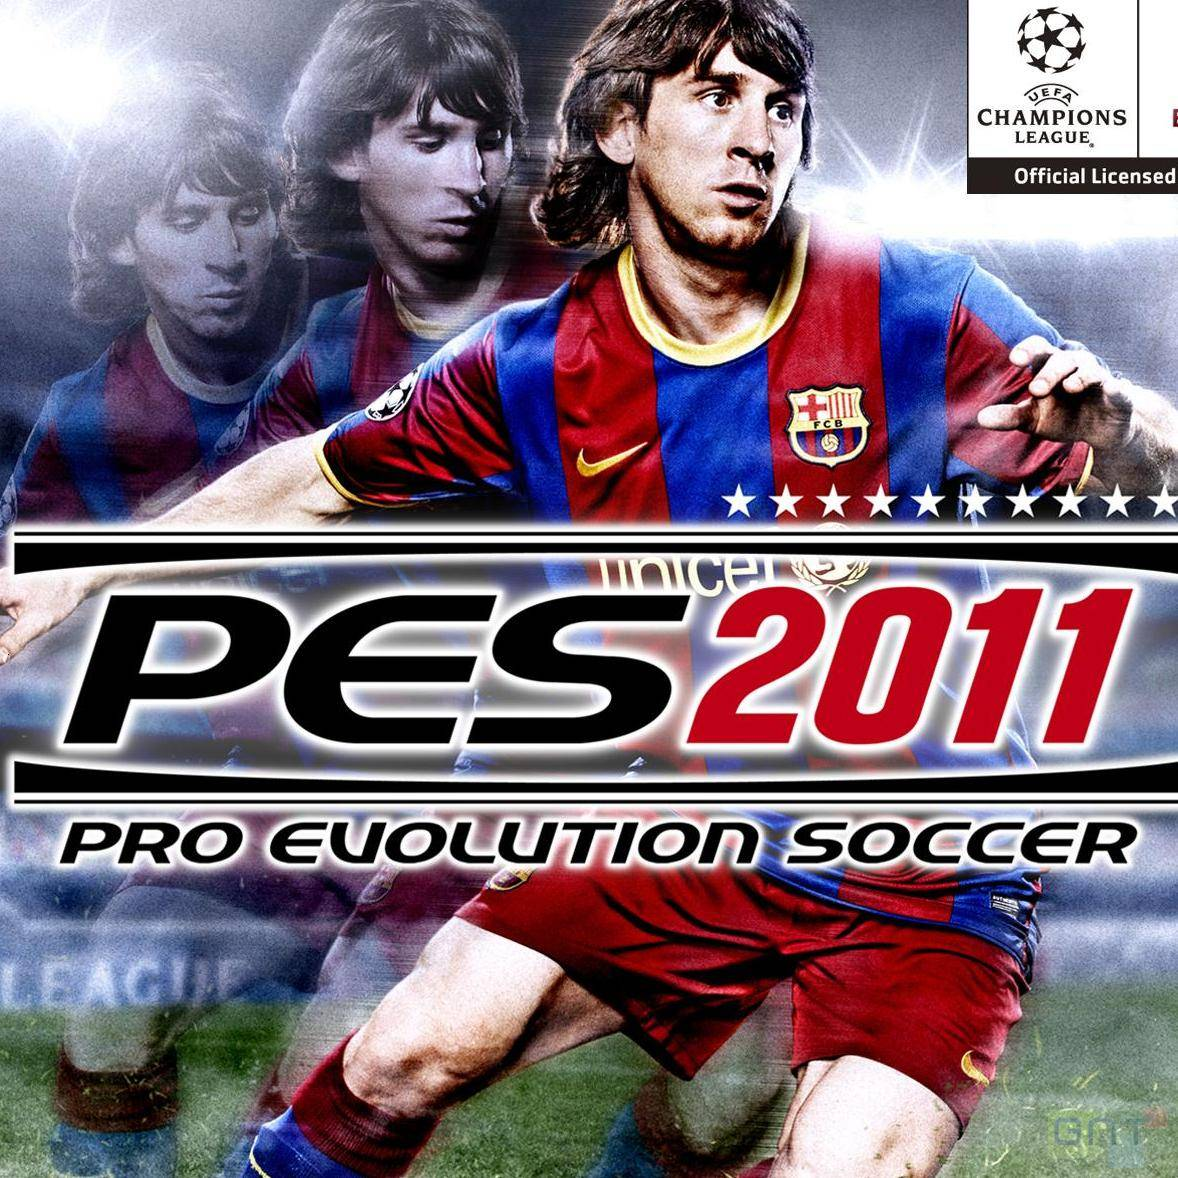 Ultigamerz Pes 2010 Pes 2011 Face: Telecharger Pes 2011 En 2 Minutes